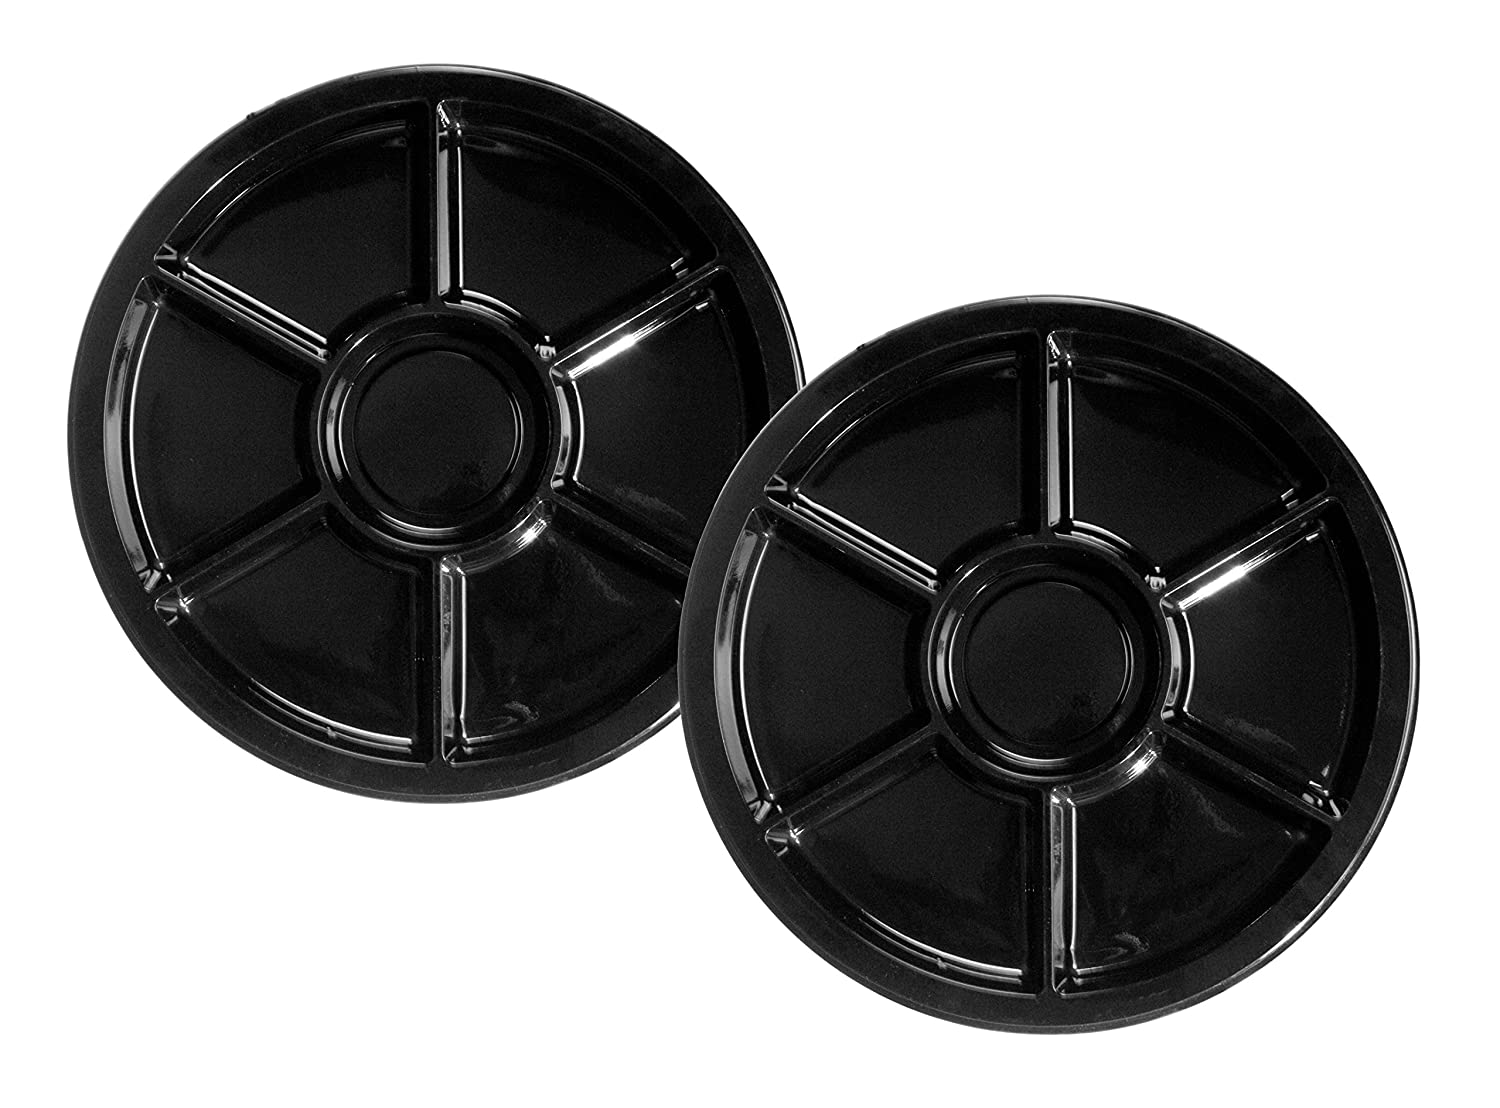 Party Essentials Soft Plastic 12-Inch Round Divided Catering Trays, Black, 3-Pack N400620